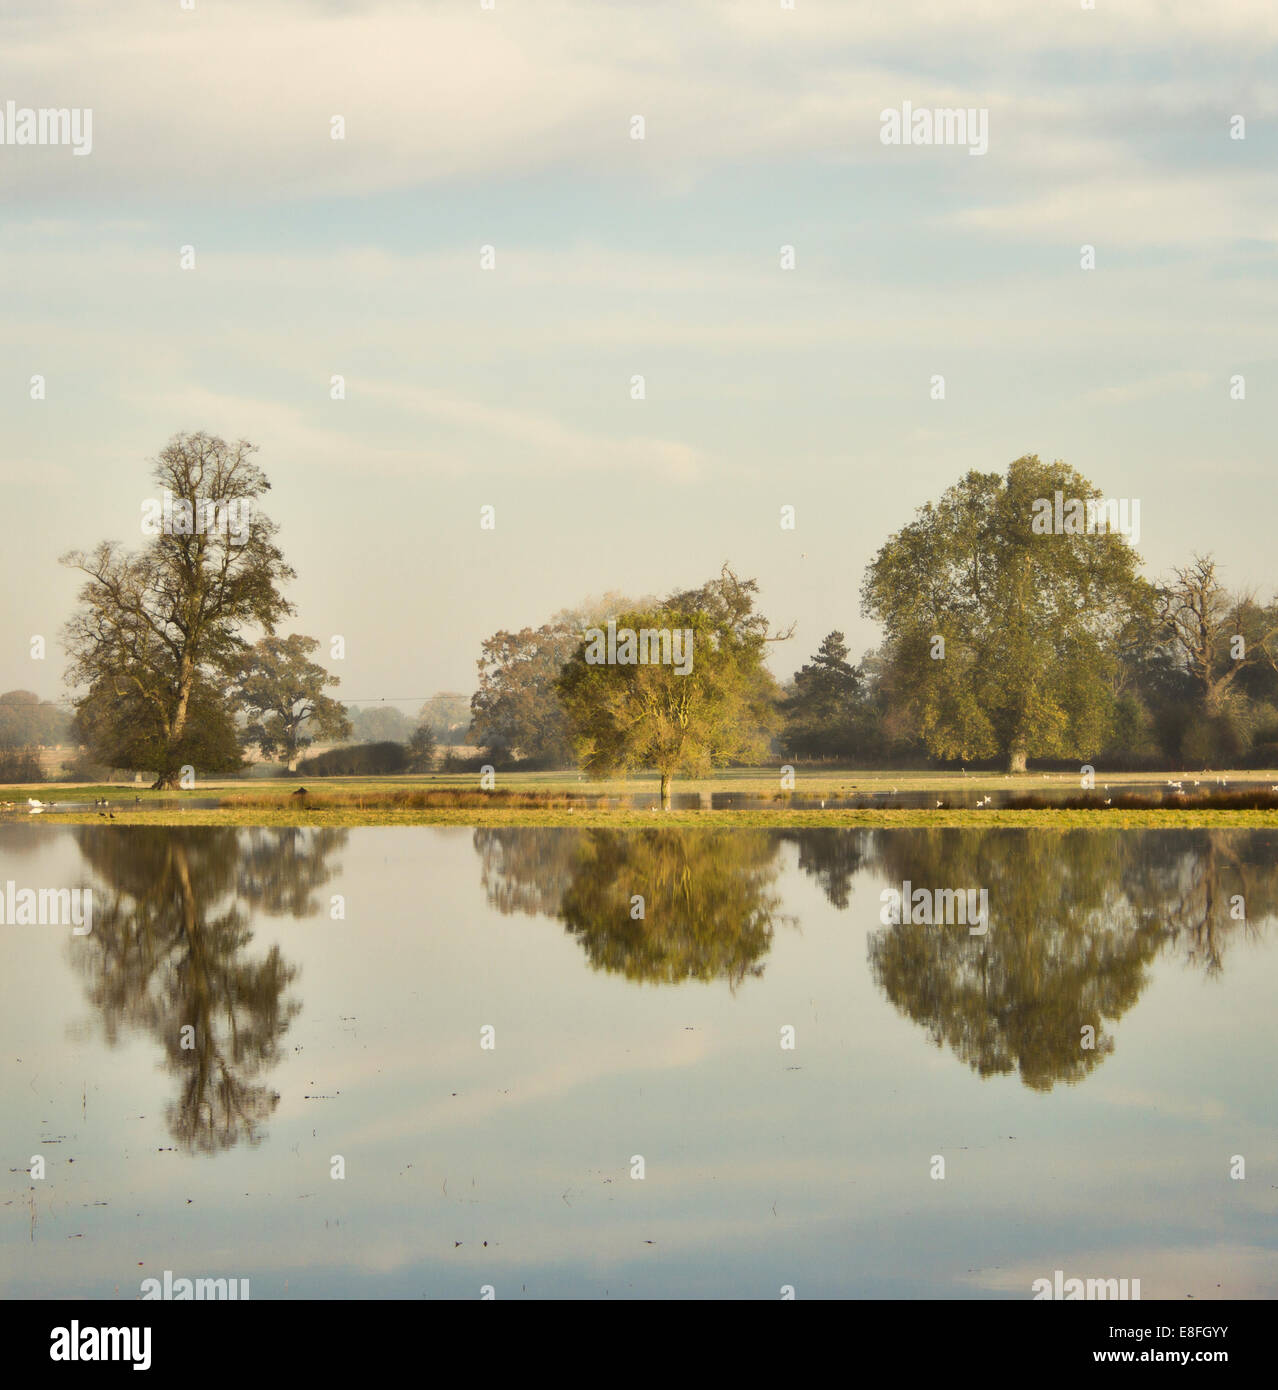 Country landscape reflected in water - Stock Image